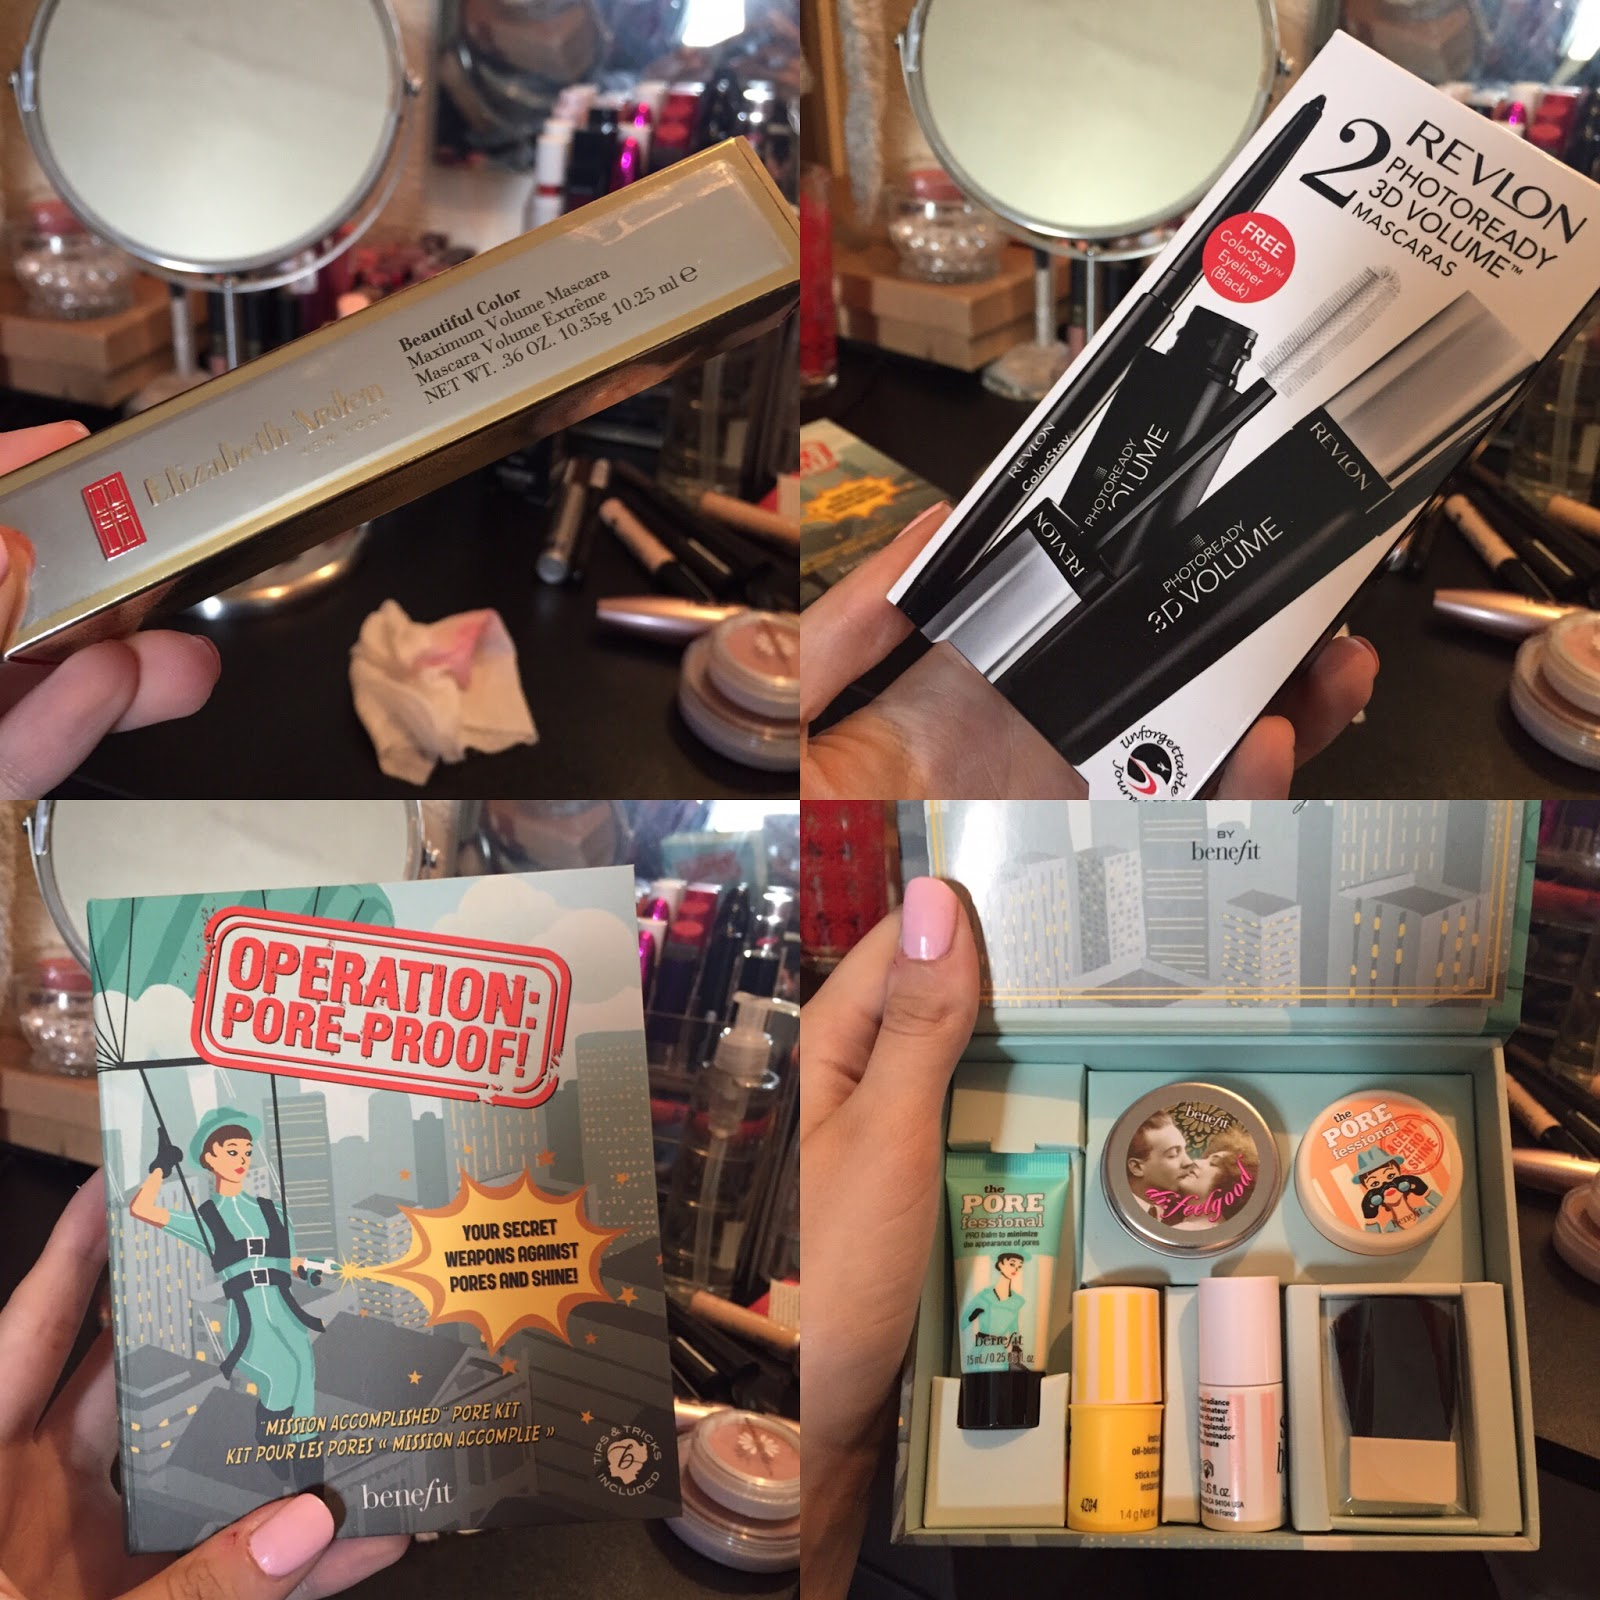 Diary And Confessions Of A Make Up Addict Boots Tkmaxx Haul Benefit Operation Pore Proof Kit I Got An Elizabeth Arden Mascara From This Retails At 22 But For 799 Which Is Amazing Also Wanted To Get The Revlon Photo Ready